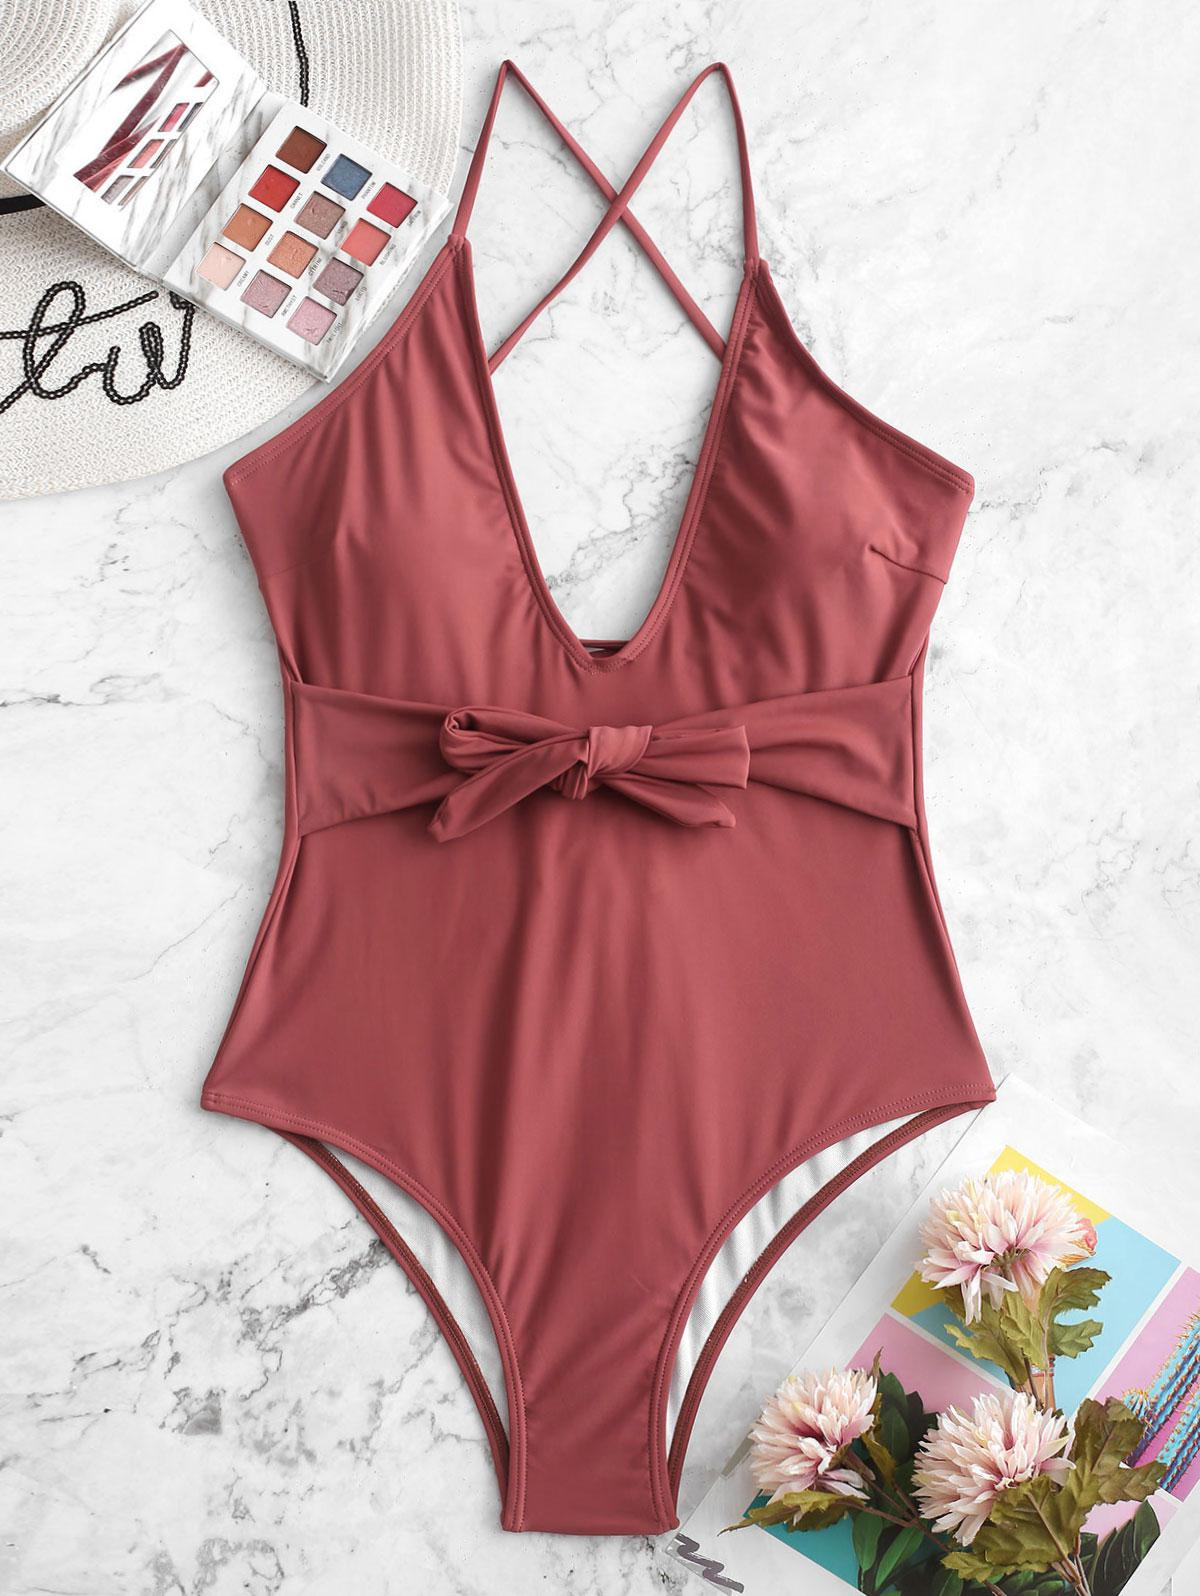 ZAFUL Belted Lace Up One-piece Swimsuit, Cherry red